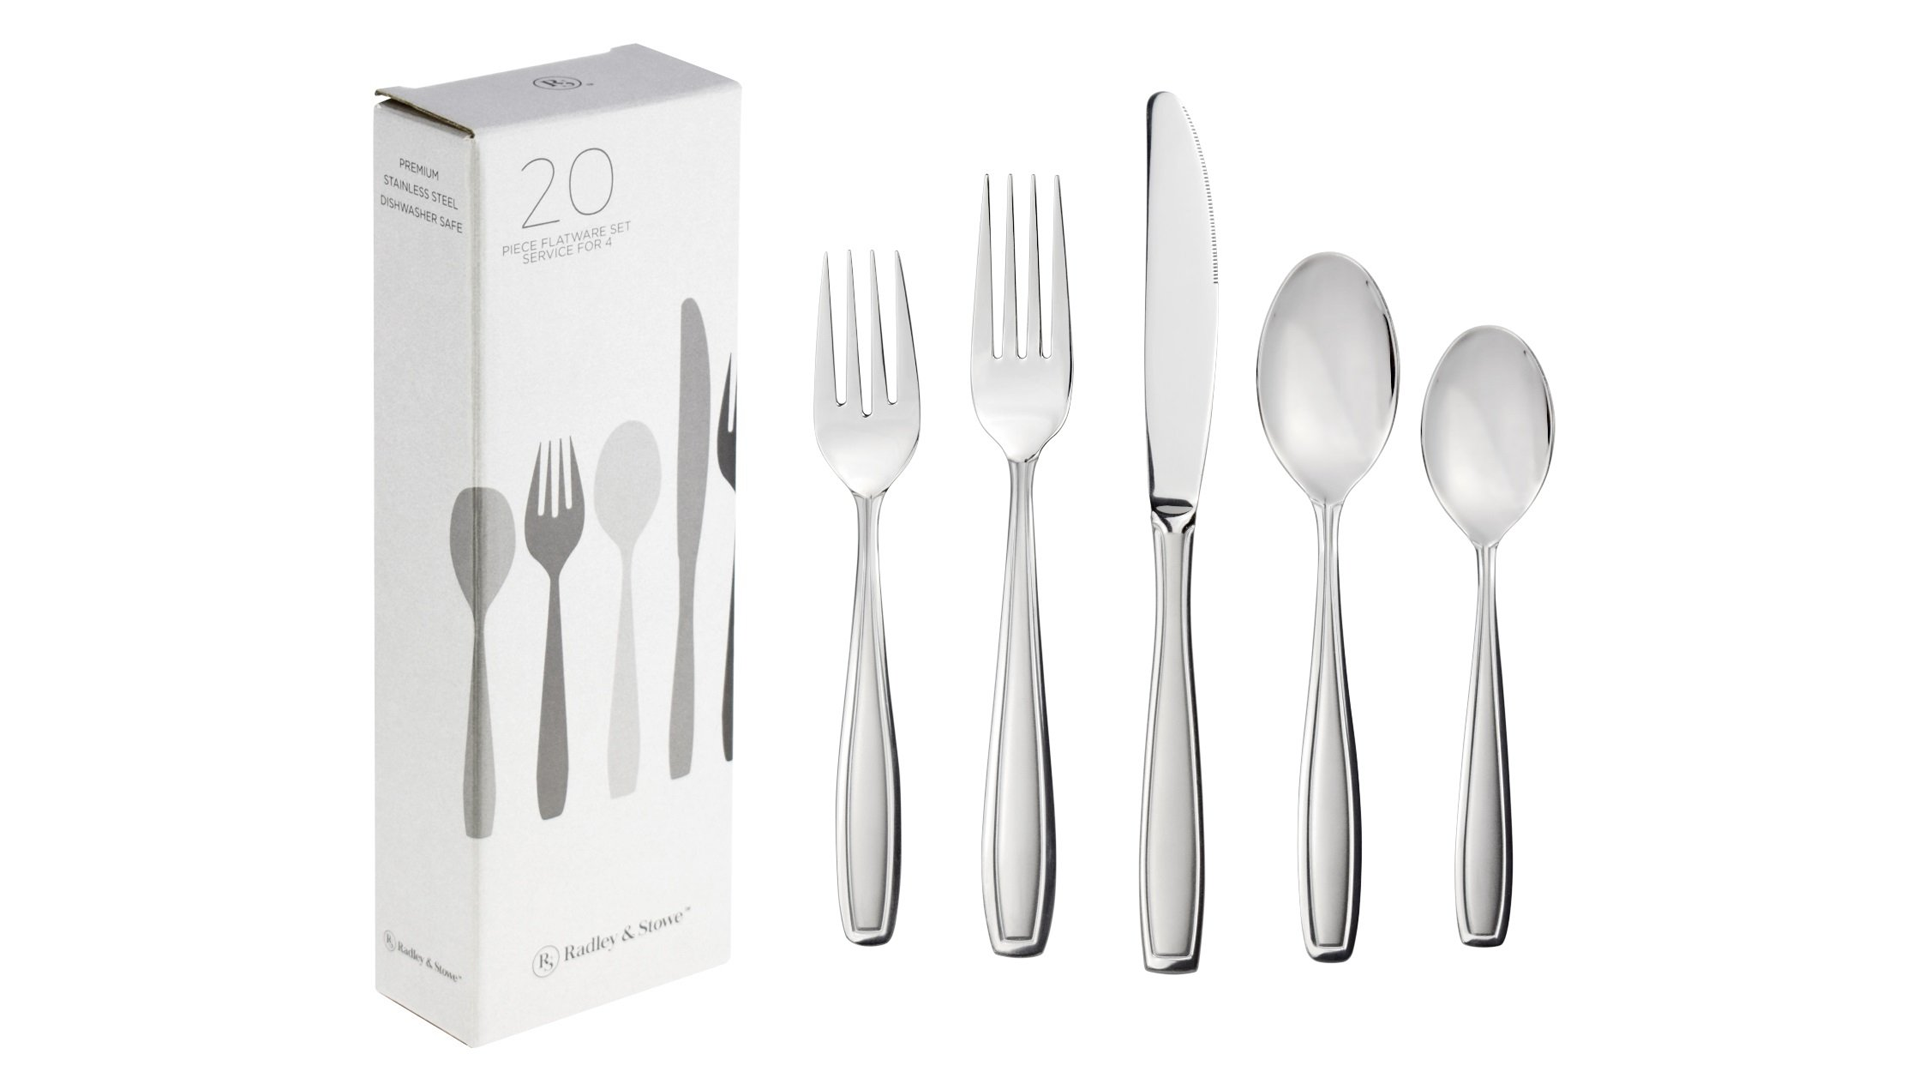 The Radley and Stowe 20-piece flatware set.